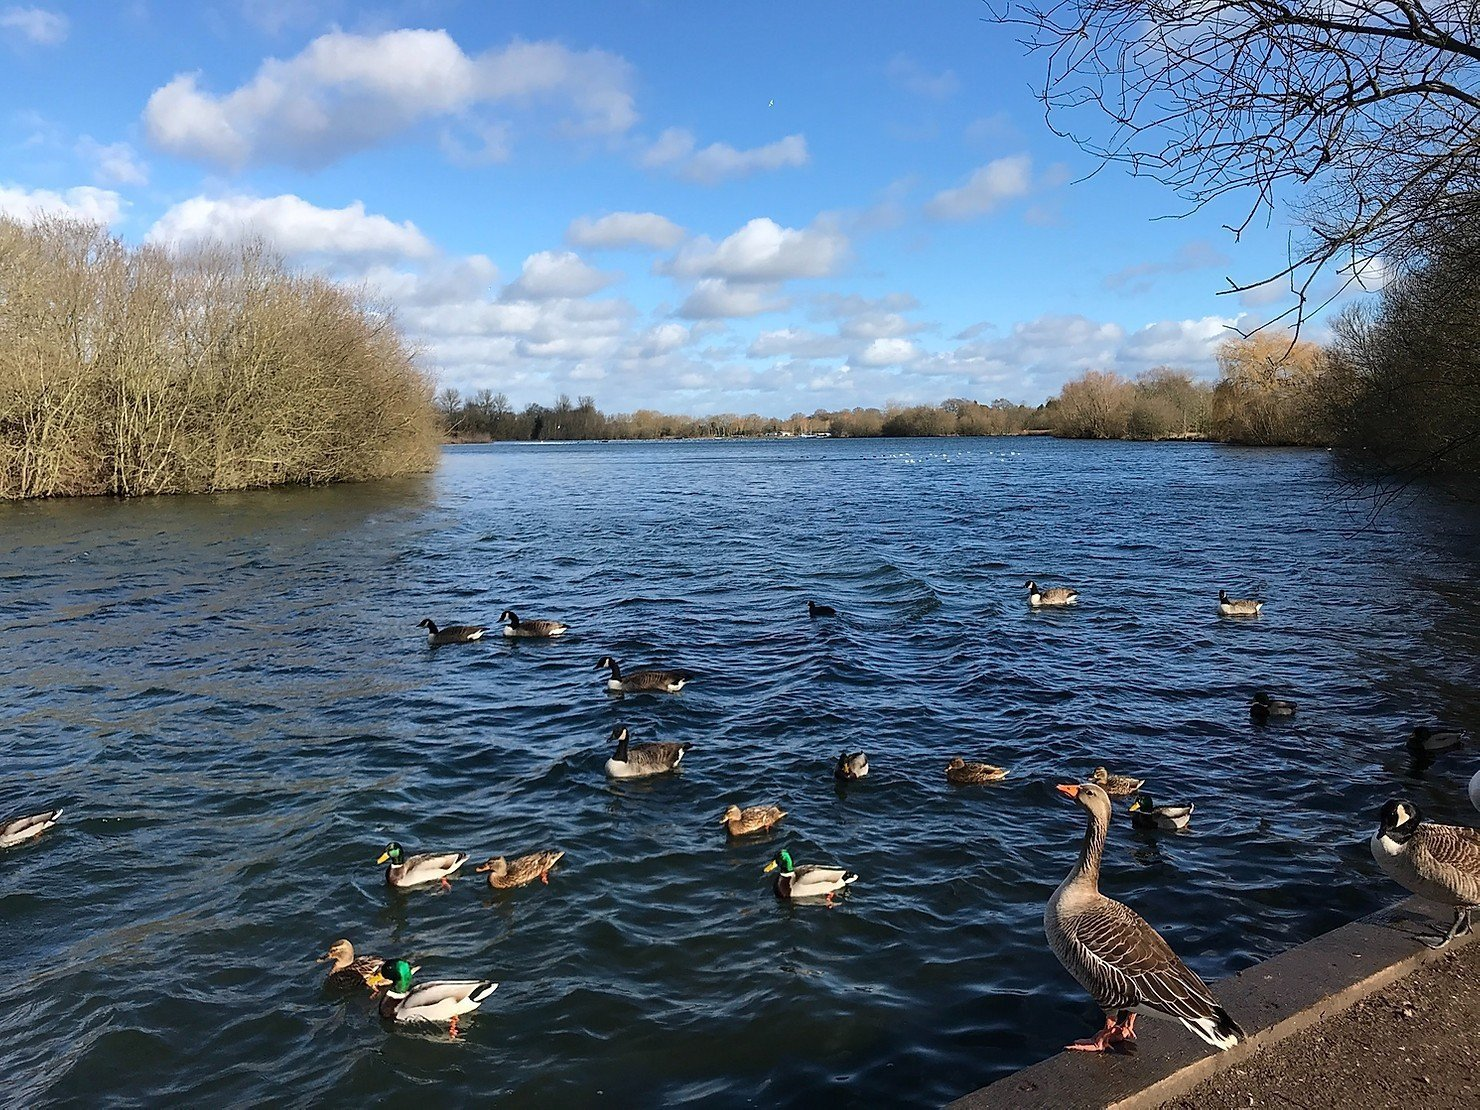 Dinton Pastures - Things to do in Berkshire